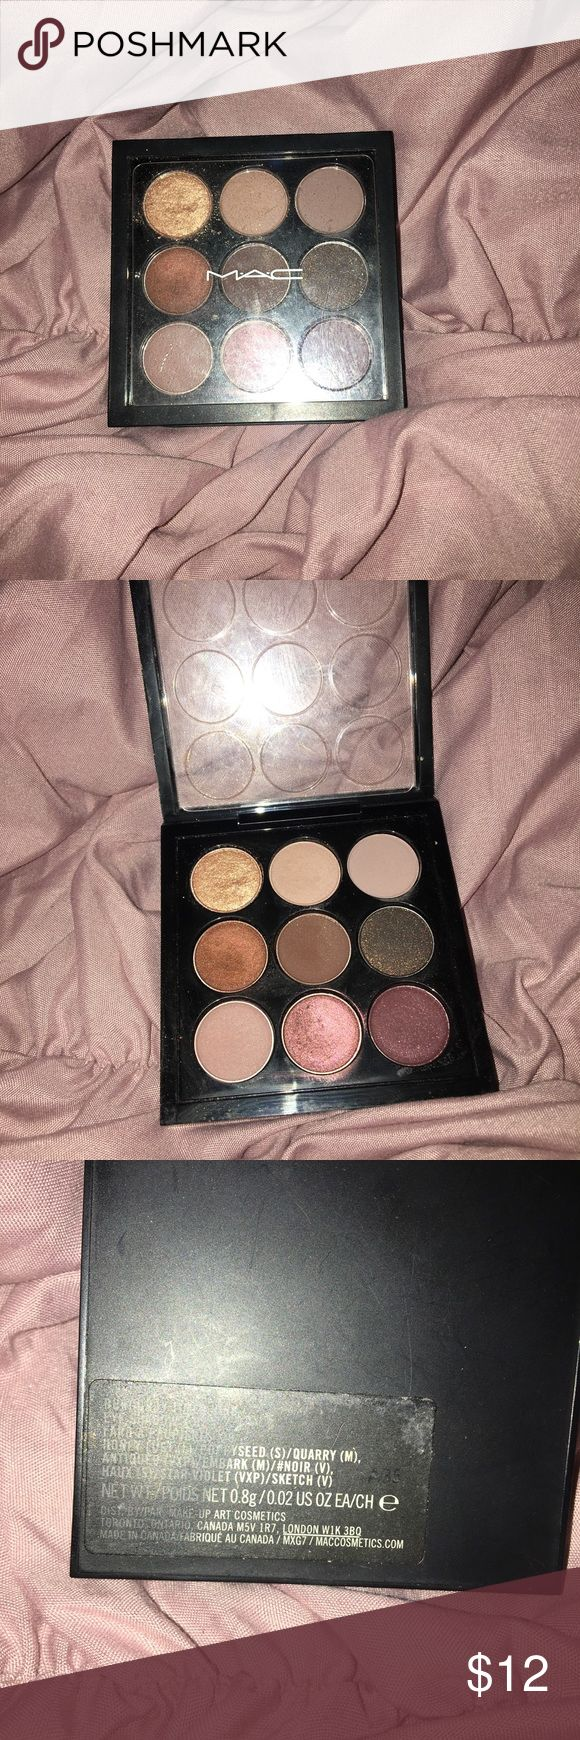 MAC Burgundy x9 Eyeshadow Palette Authentic! Used a few times! MAC Cosmetics Makeup Eyeshadow